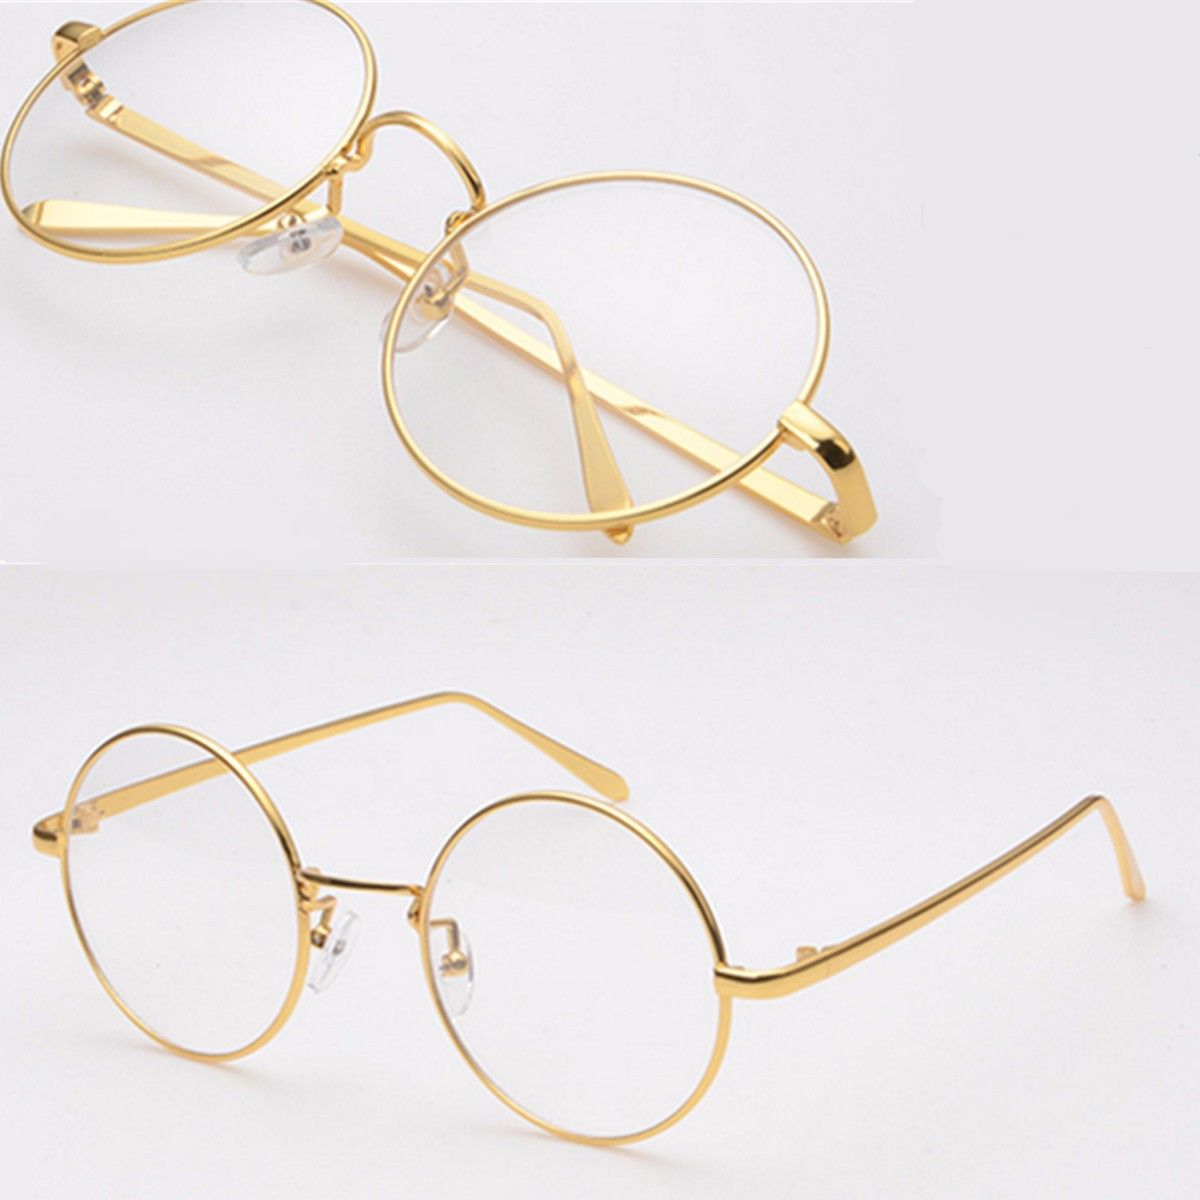 c46685751ef GOLD Metal Vintage Round Eyeglass Frame Clear Lens Full-Rim Glasses ...